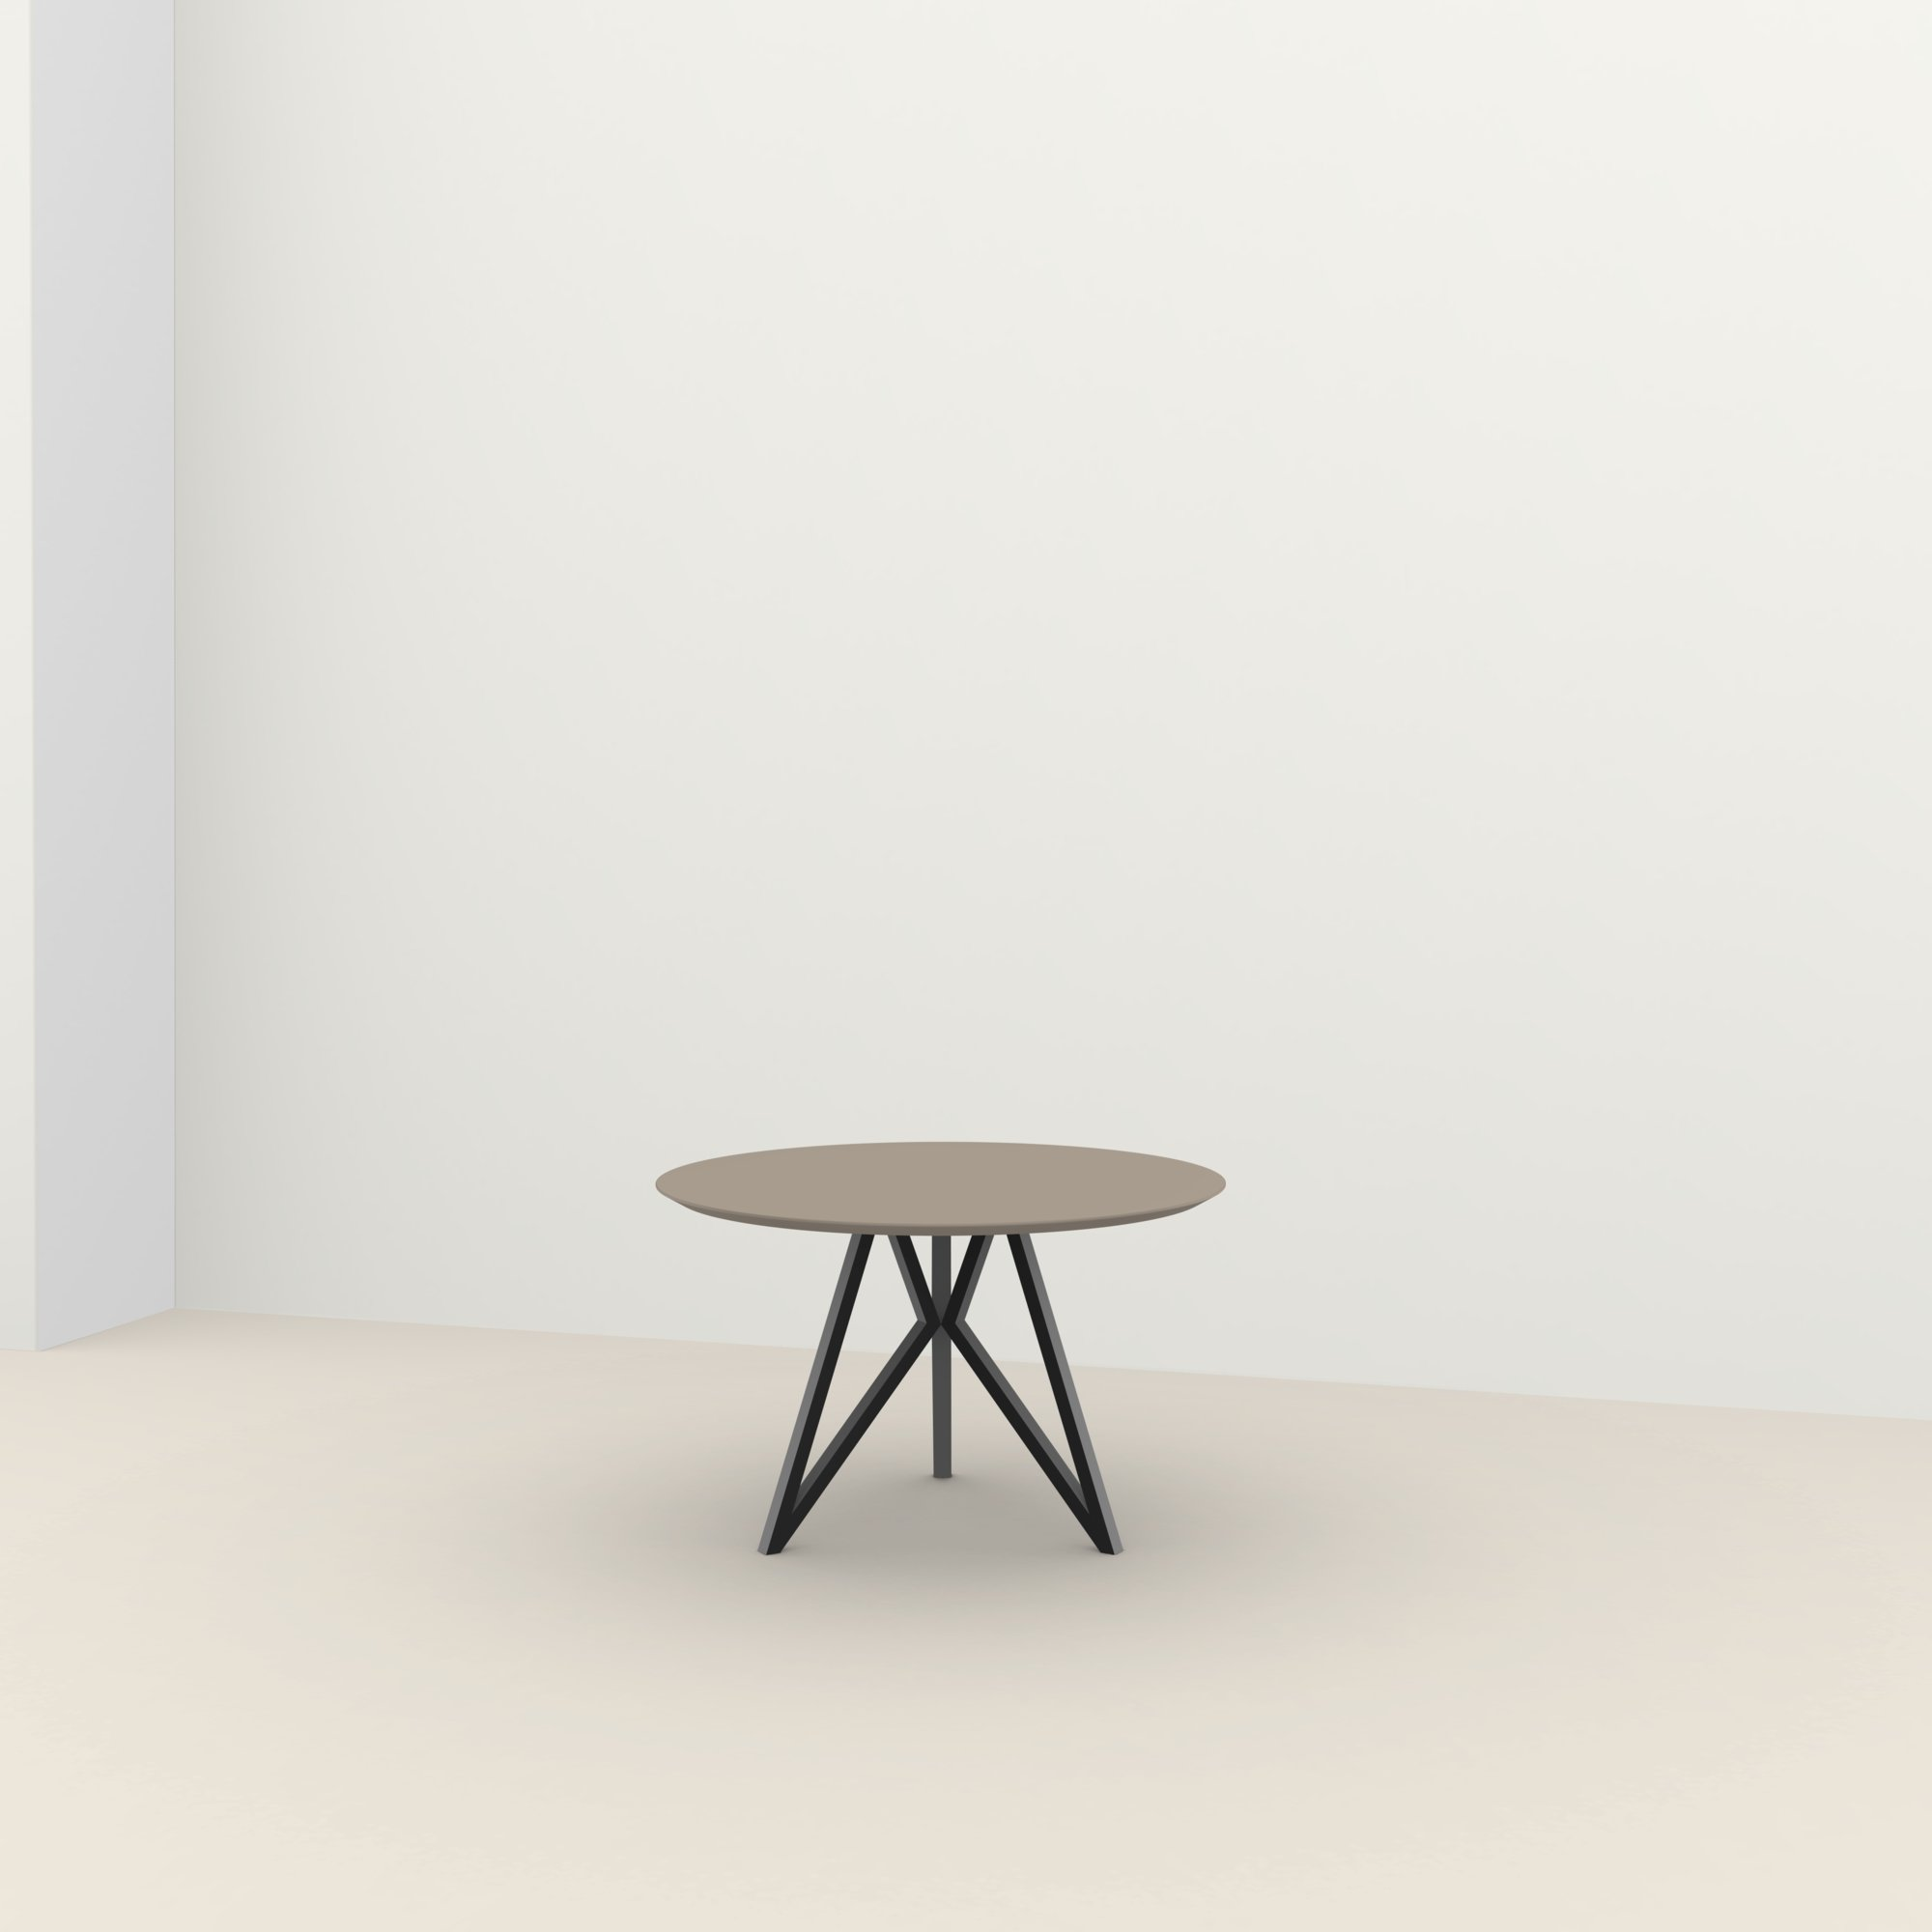 Ronde design tafel op maat | Butterfly Tripod Steel black powdercoating | HPL Fenix beige arizona | Studio HENK |